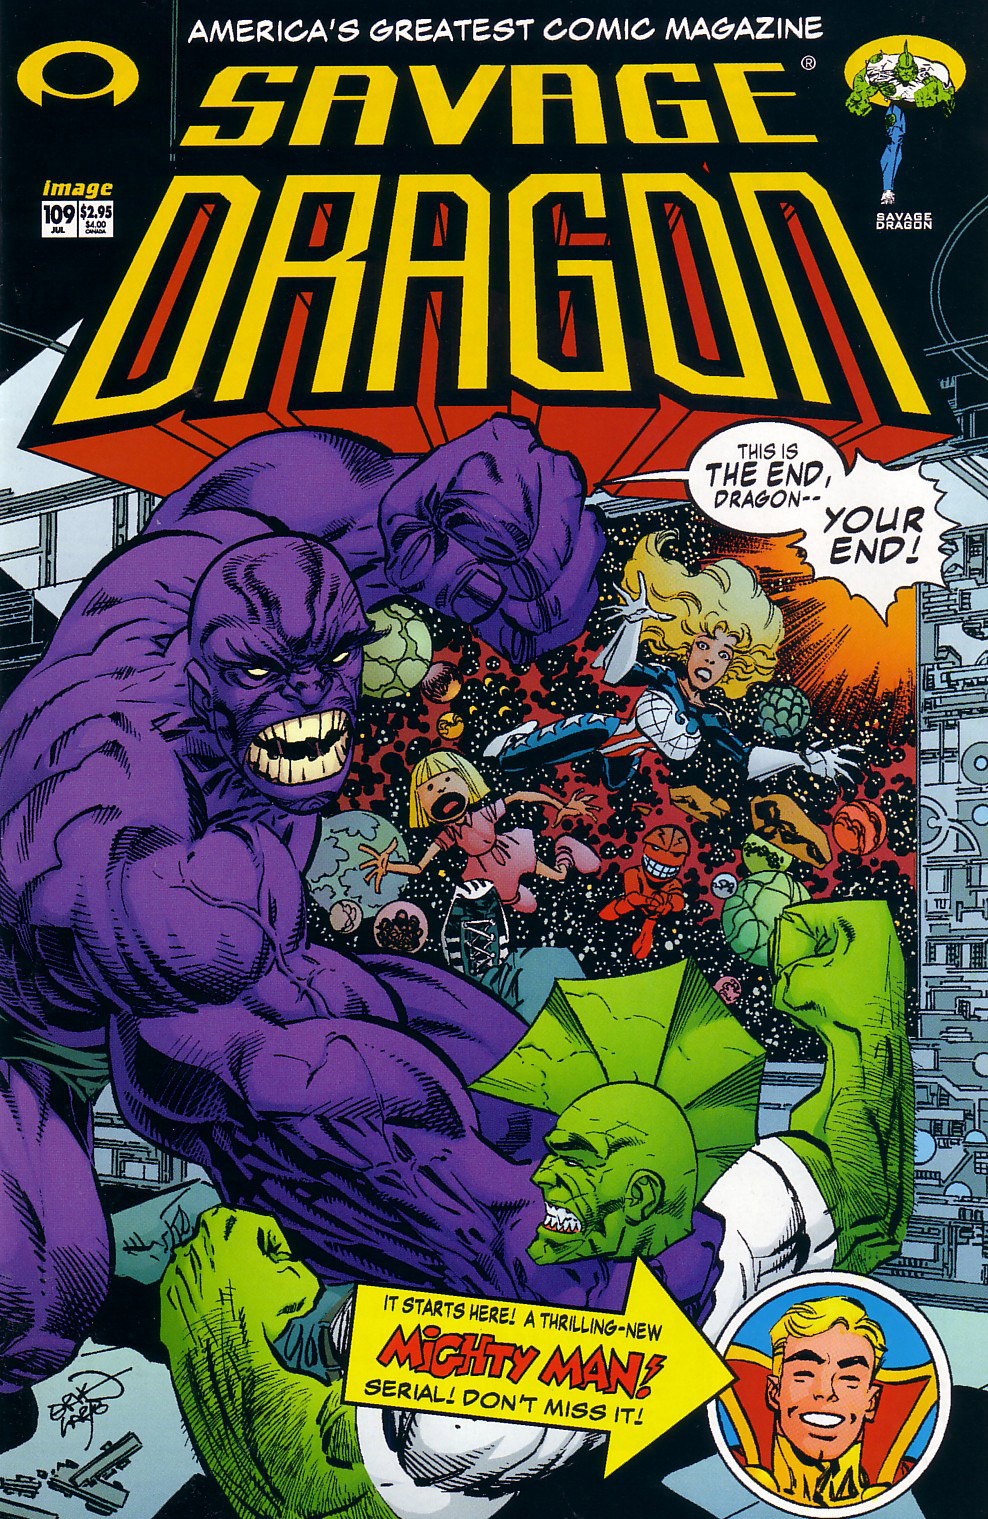 Cover Savage Dragon Vol.2 #109